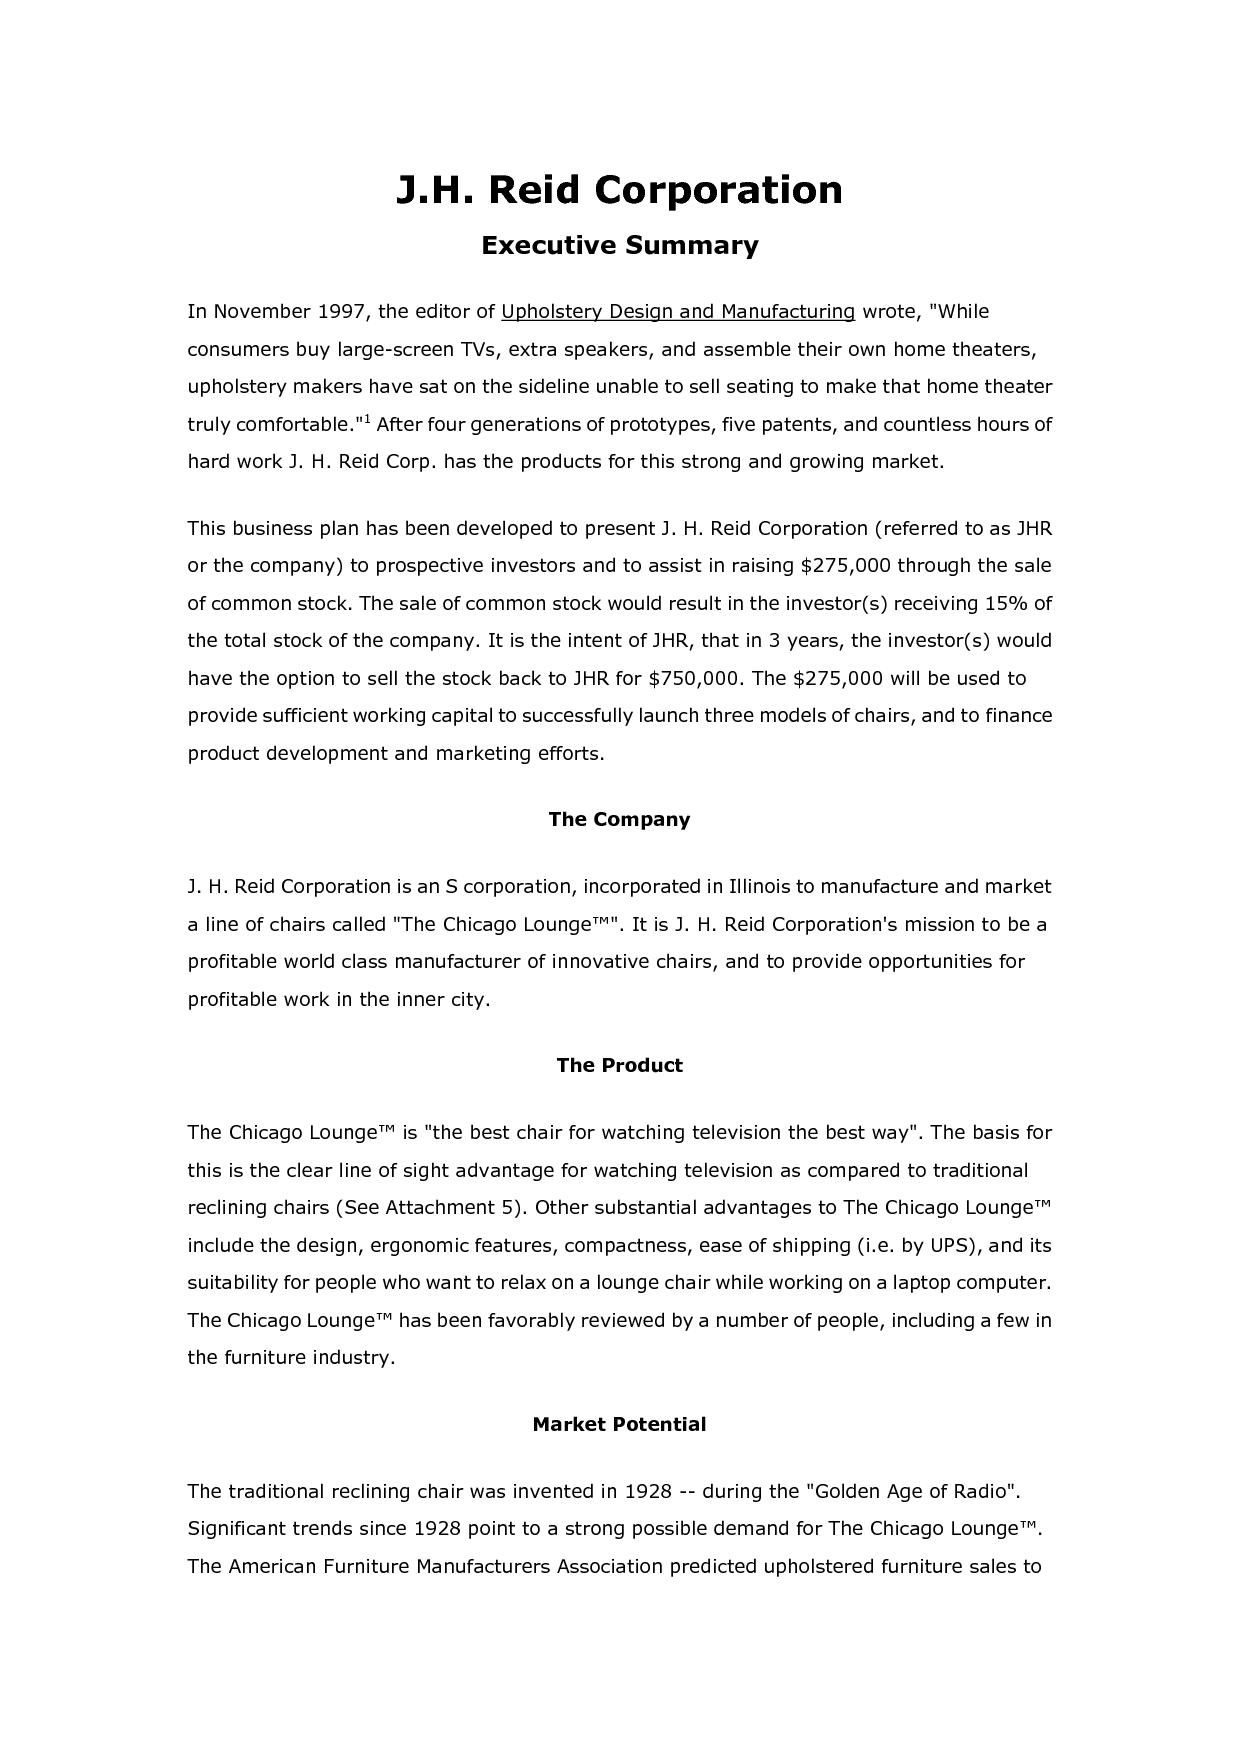 Business Plan Essay Business Plan Letter Business Essay Sample - Developing a business plan template